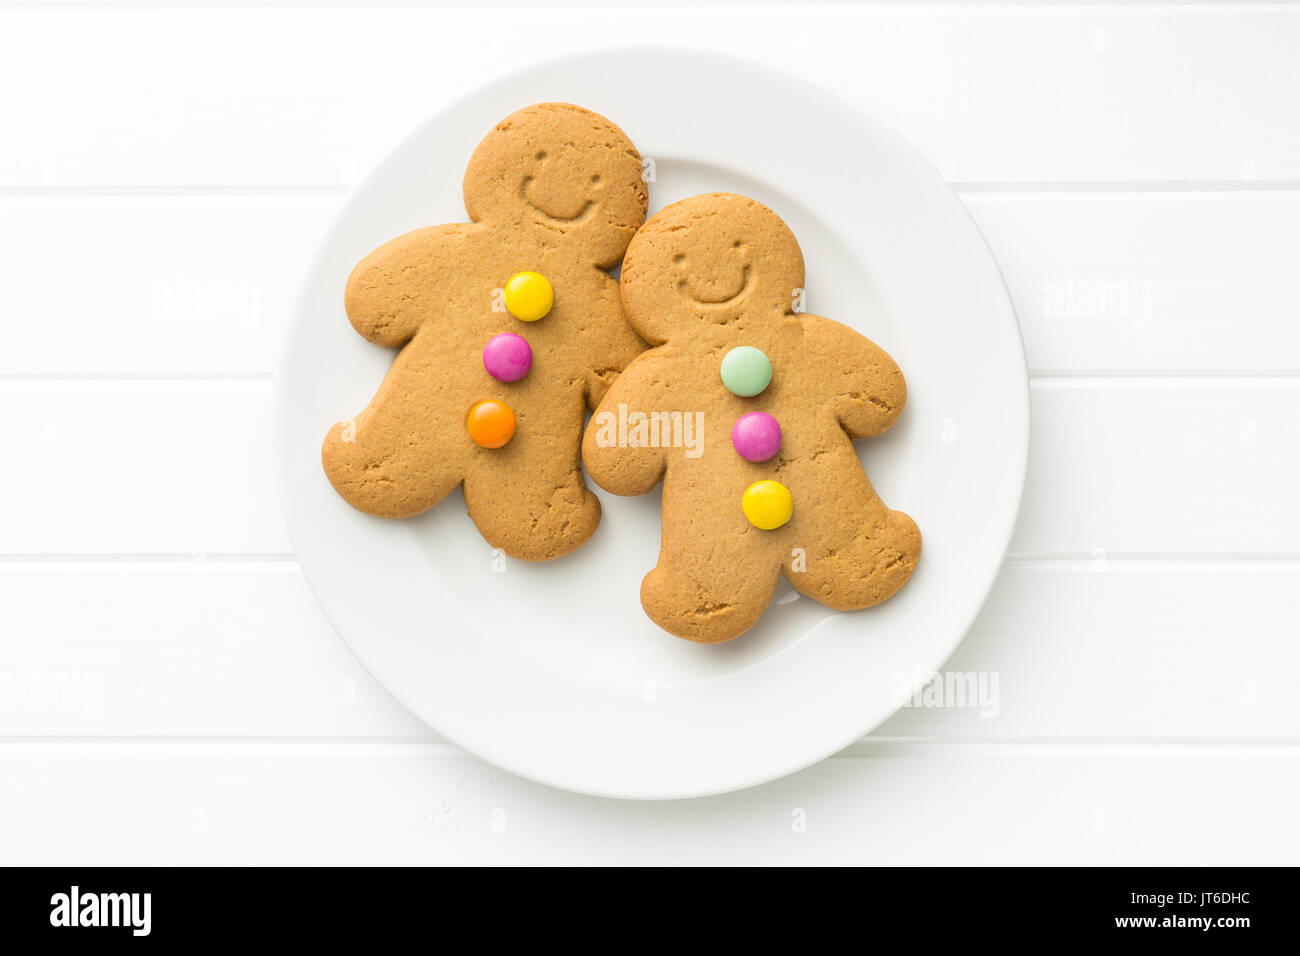 Two gingerbread men. Xmas gingerbread on white table. Top view. - Stock Image